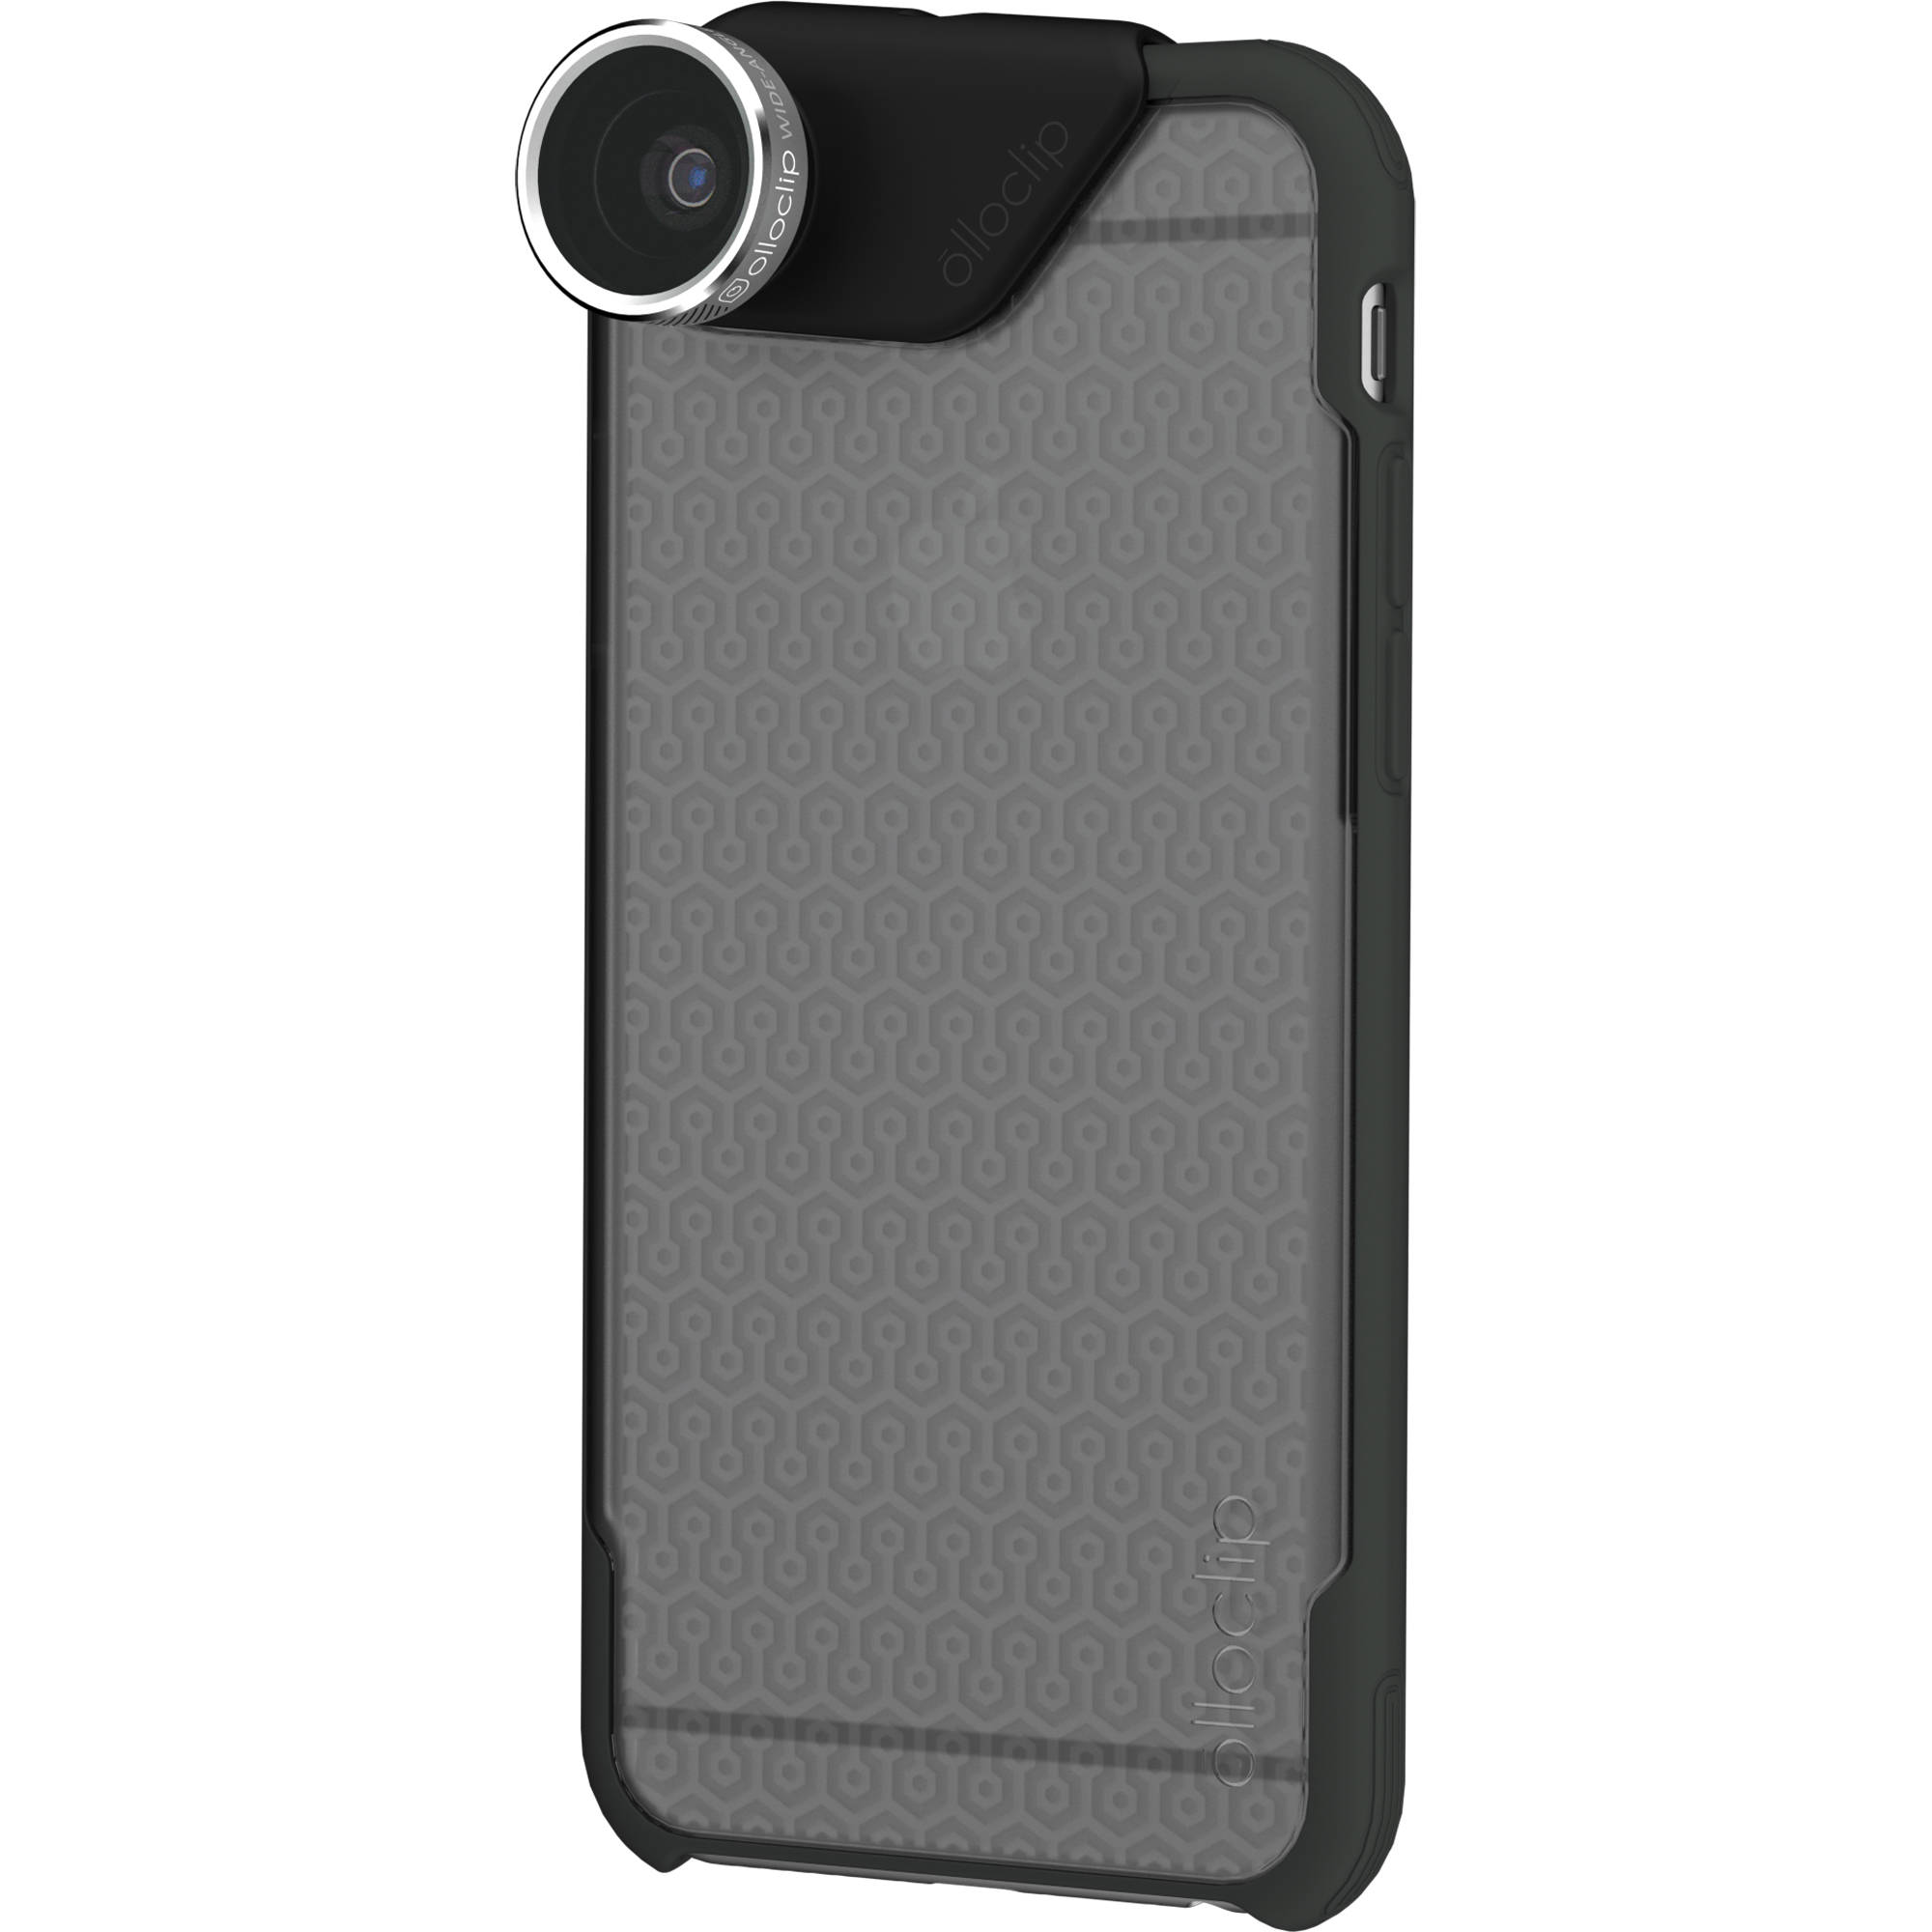 the best attitude 3eb93 8fb5b olloclip 4-in-1 Photo Lens + OLLOCASE for iPhone 6 Plus/6s Plus (Silver  Lens with Black Clip & Clear and Gray Case)